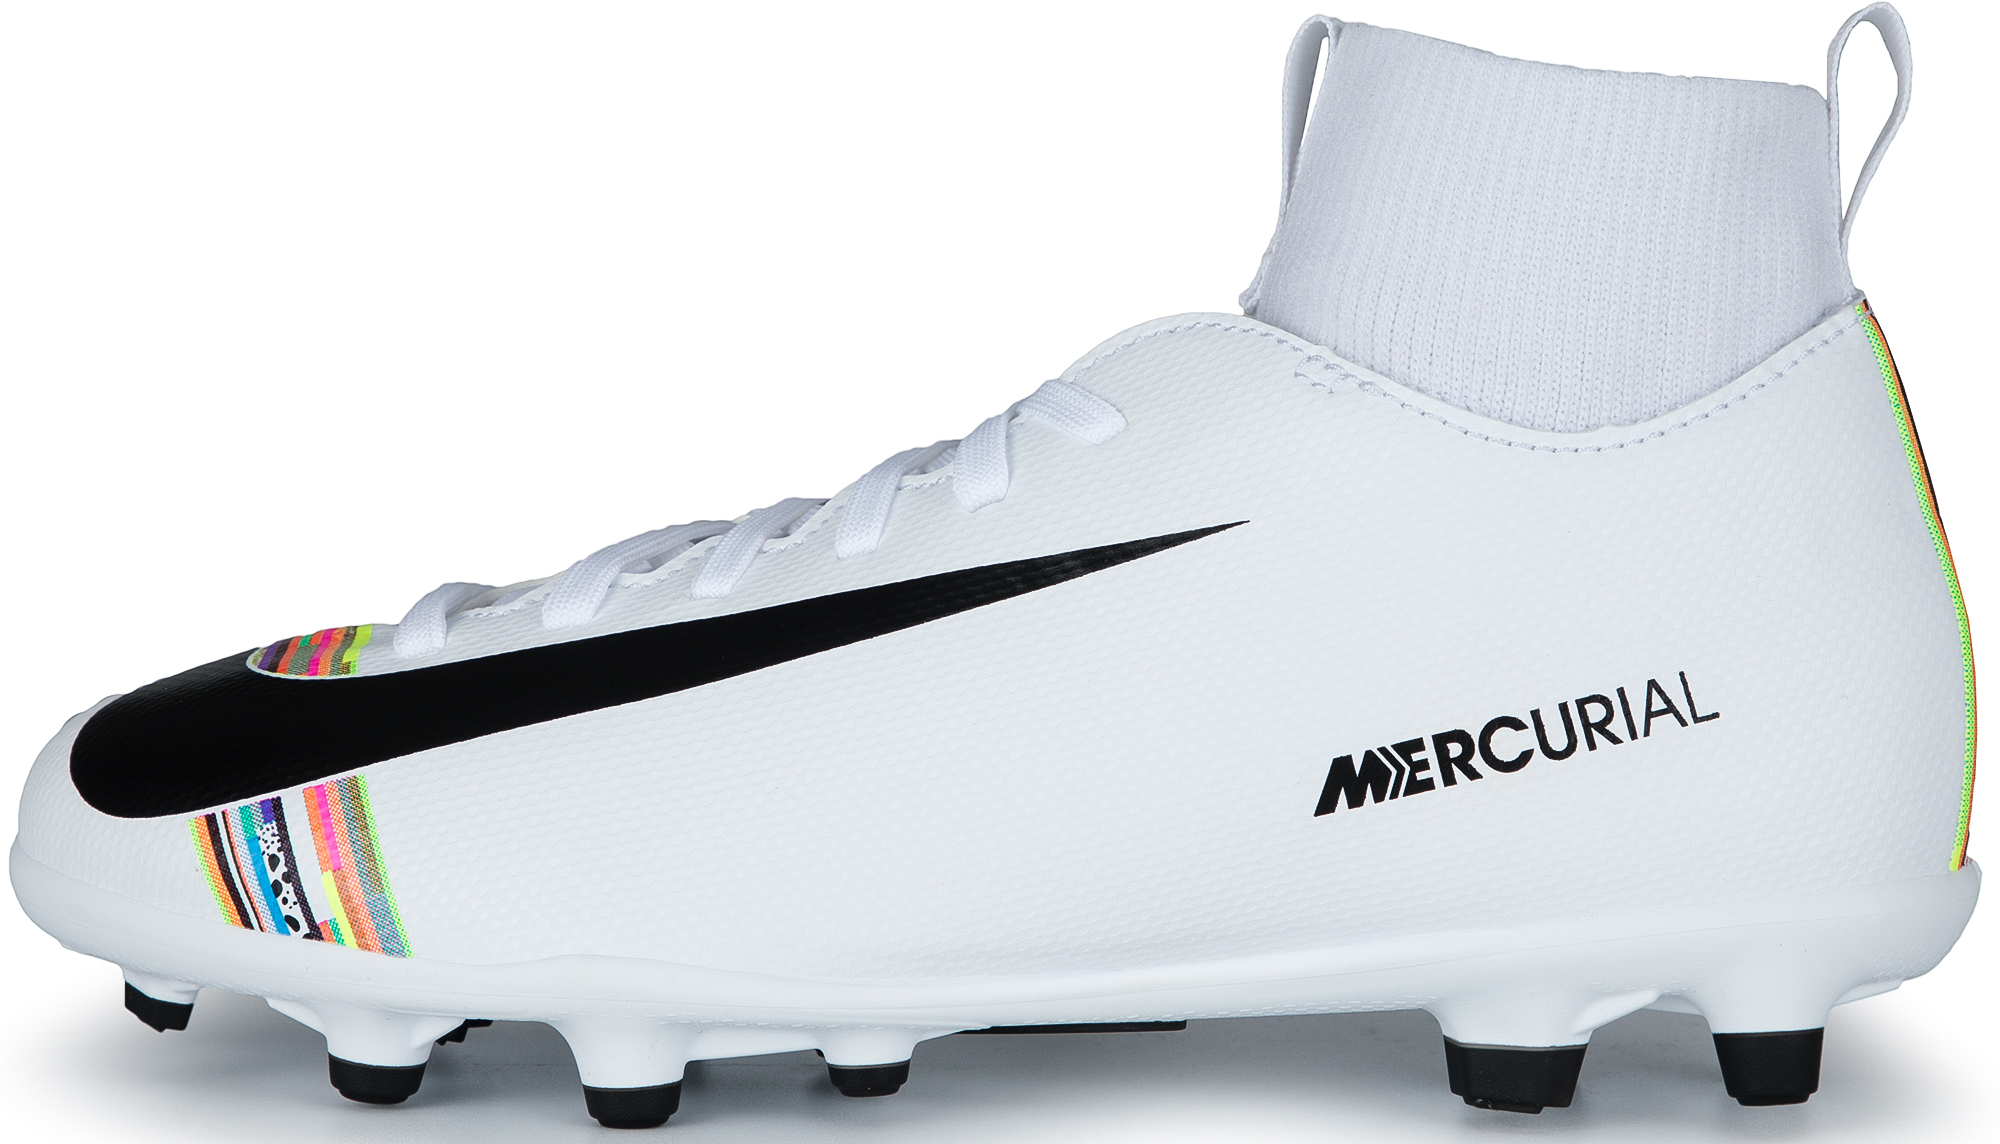 Nike Бутсы для мальчиков Nike Mercurial Superfly 6 Club CR7 FG/MG, размер 34.5 бутсы nike superfly 6 club fg mg ah7363 001